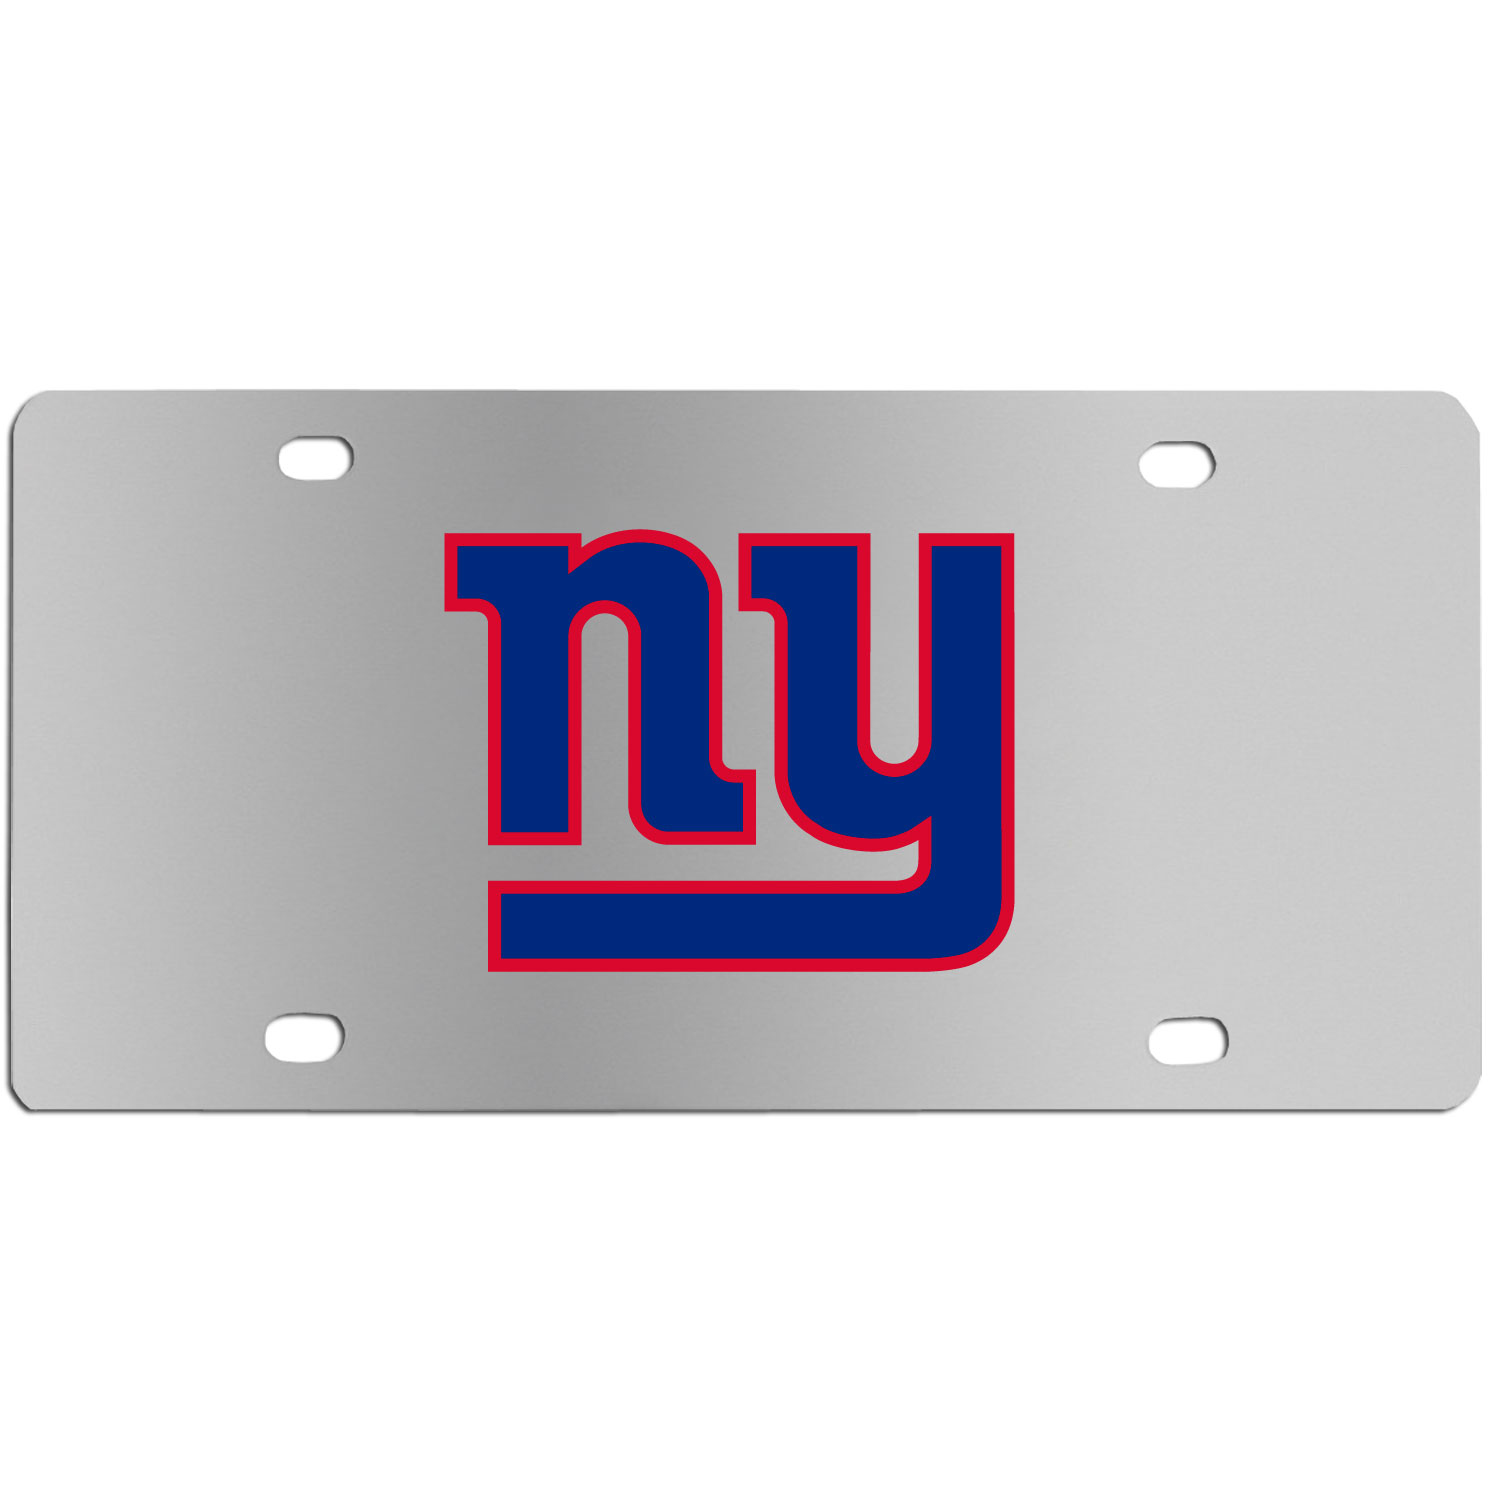 New York Giants Steel License Plate Wall Plaque - This high-quality stainless steel license plate features a detailed team logo on a the polished surface. The attractive plate is perfect for wall mounting in your home or office to become the perfect die-hard New York Giants fan decor.